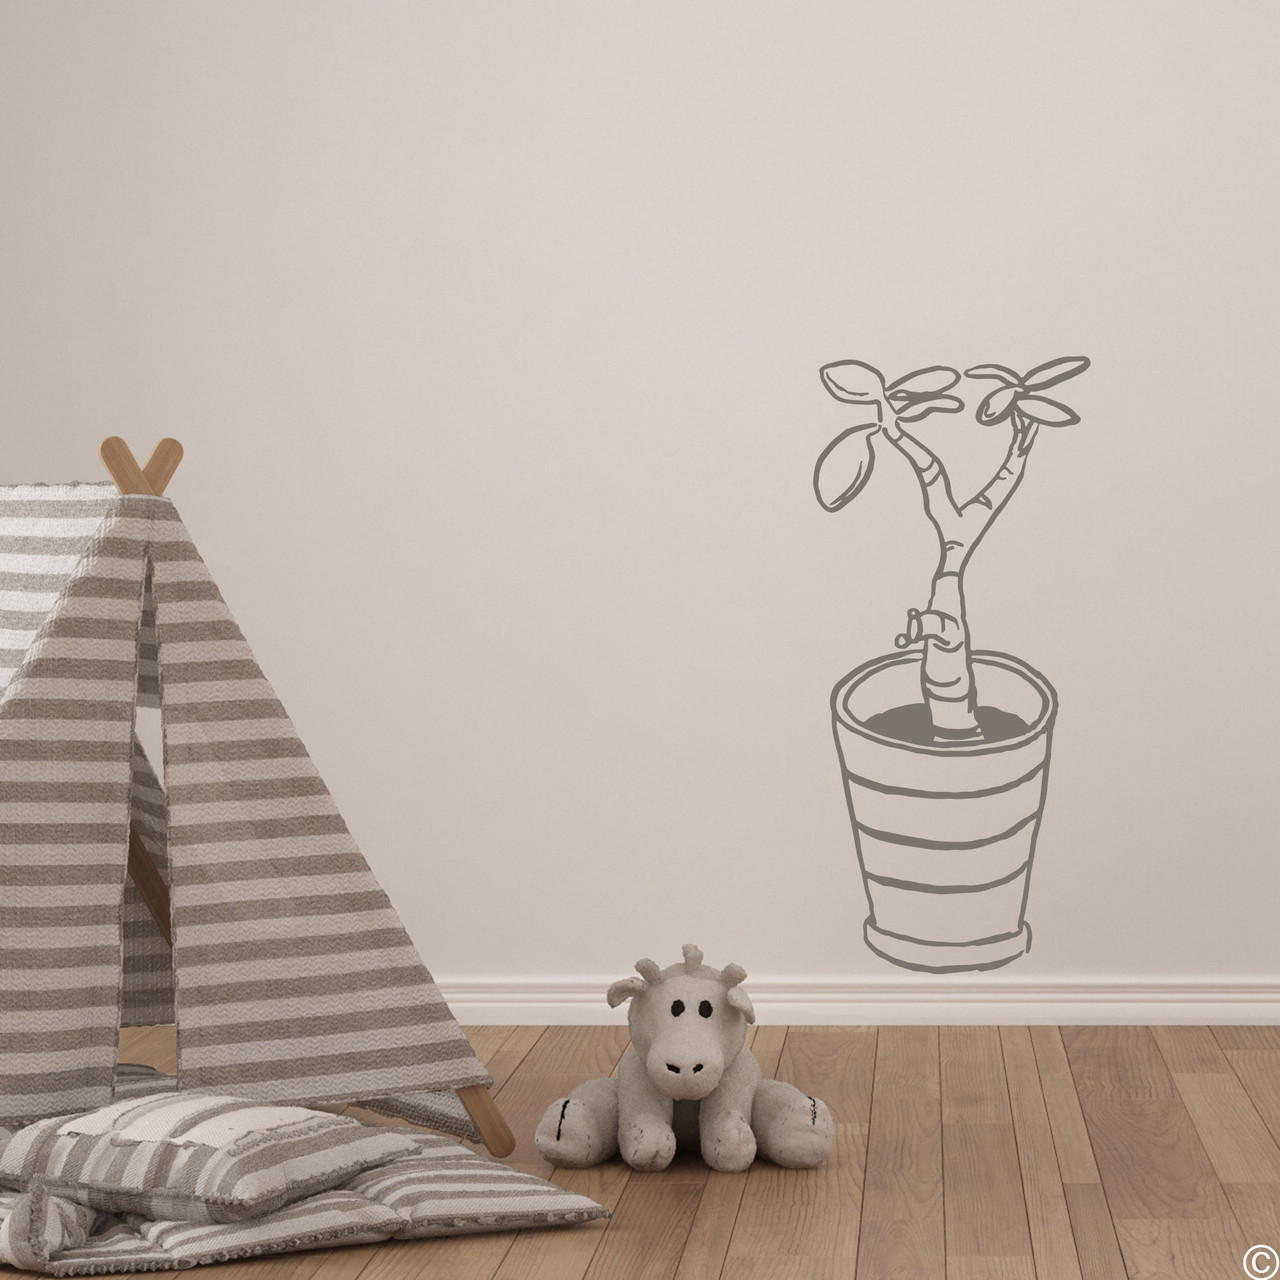 The hand drawn baby jade potted plant wall decal in the limited edition castle grey vinyl color.